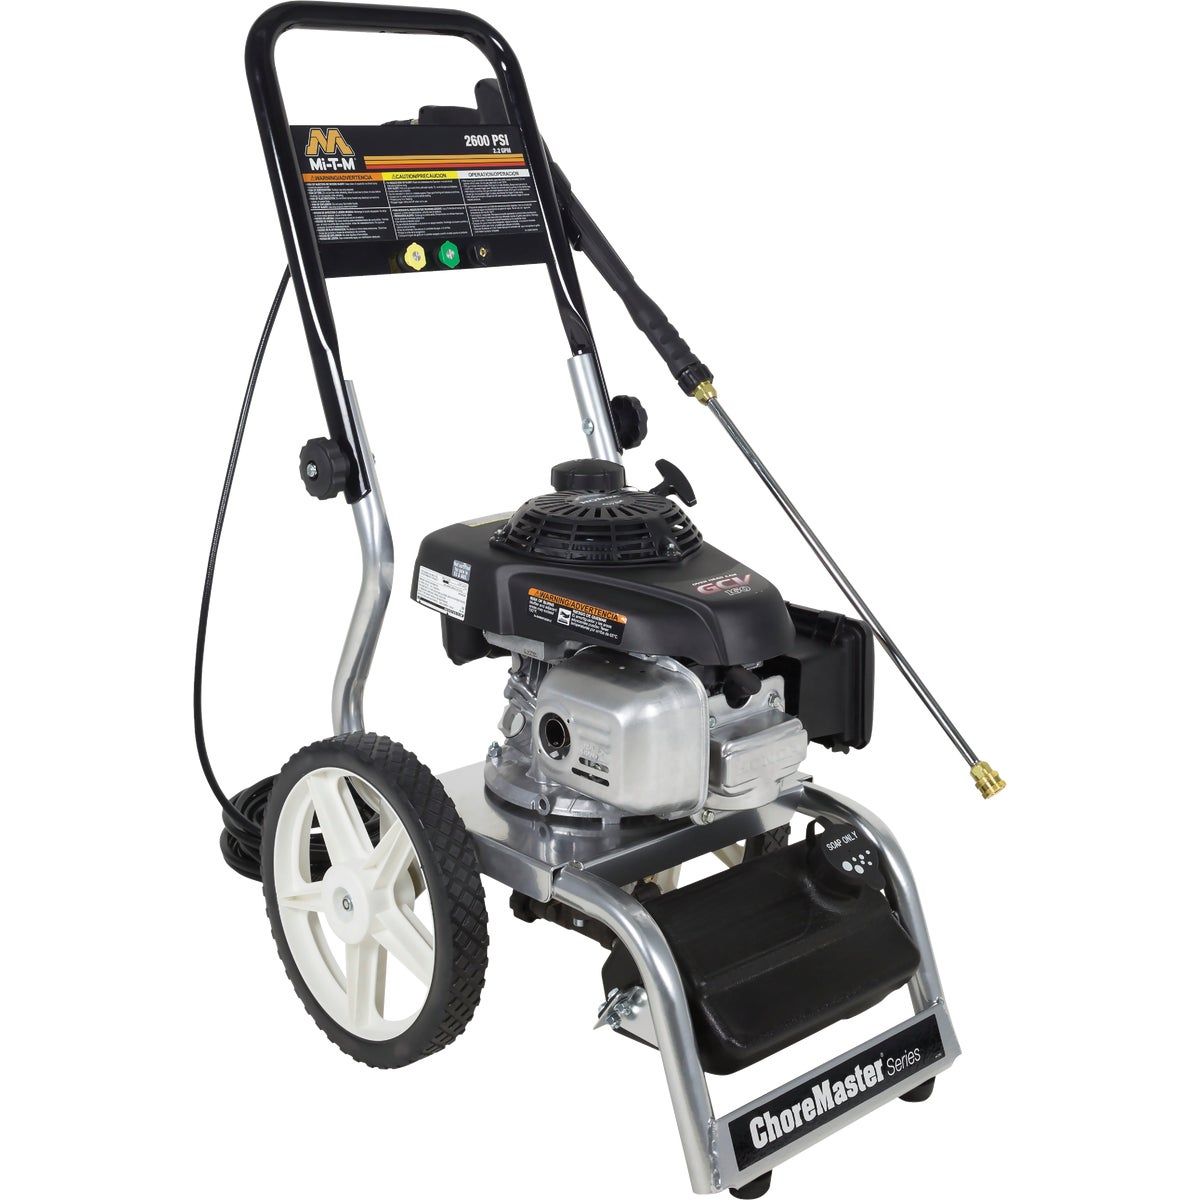 2600PSI PRESSURE WASHER - CV-2600-0MSC by Mi T M Corp